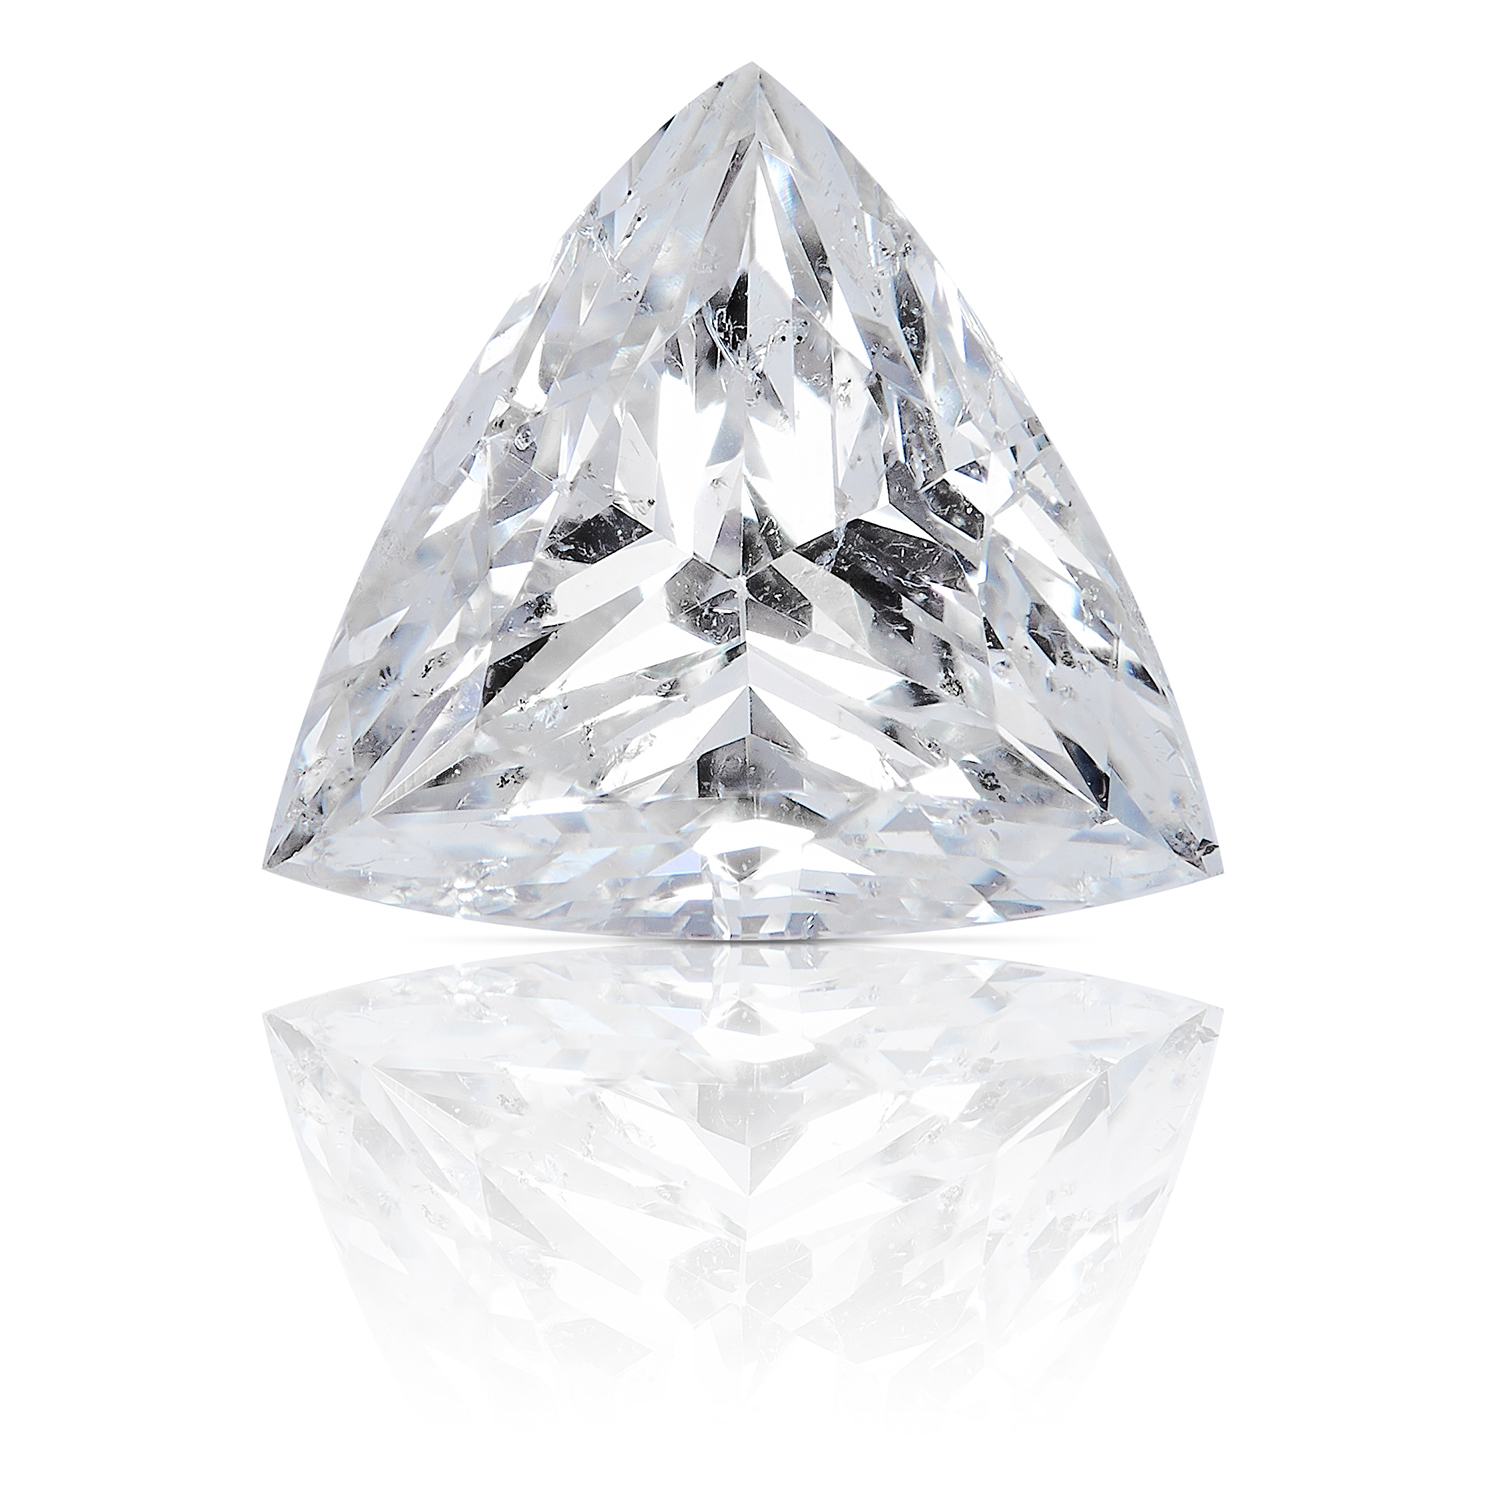 A 1.12ct TRIANGULAR BRILLIANT CUT DIAMOND, UNMOUNTED.